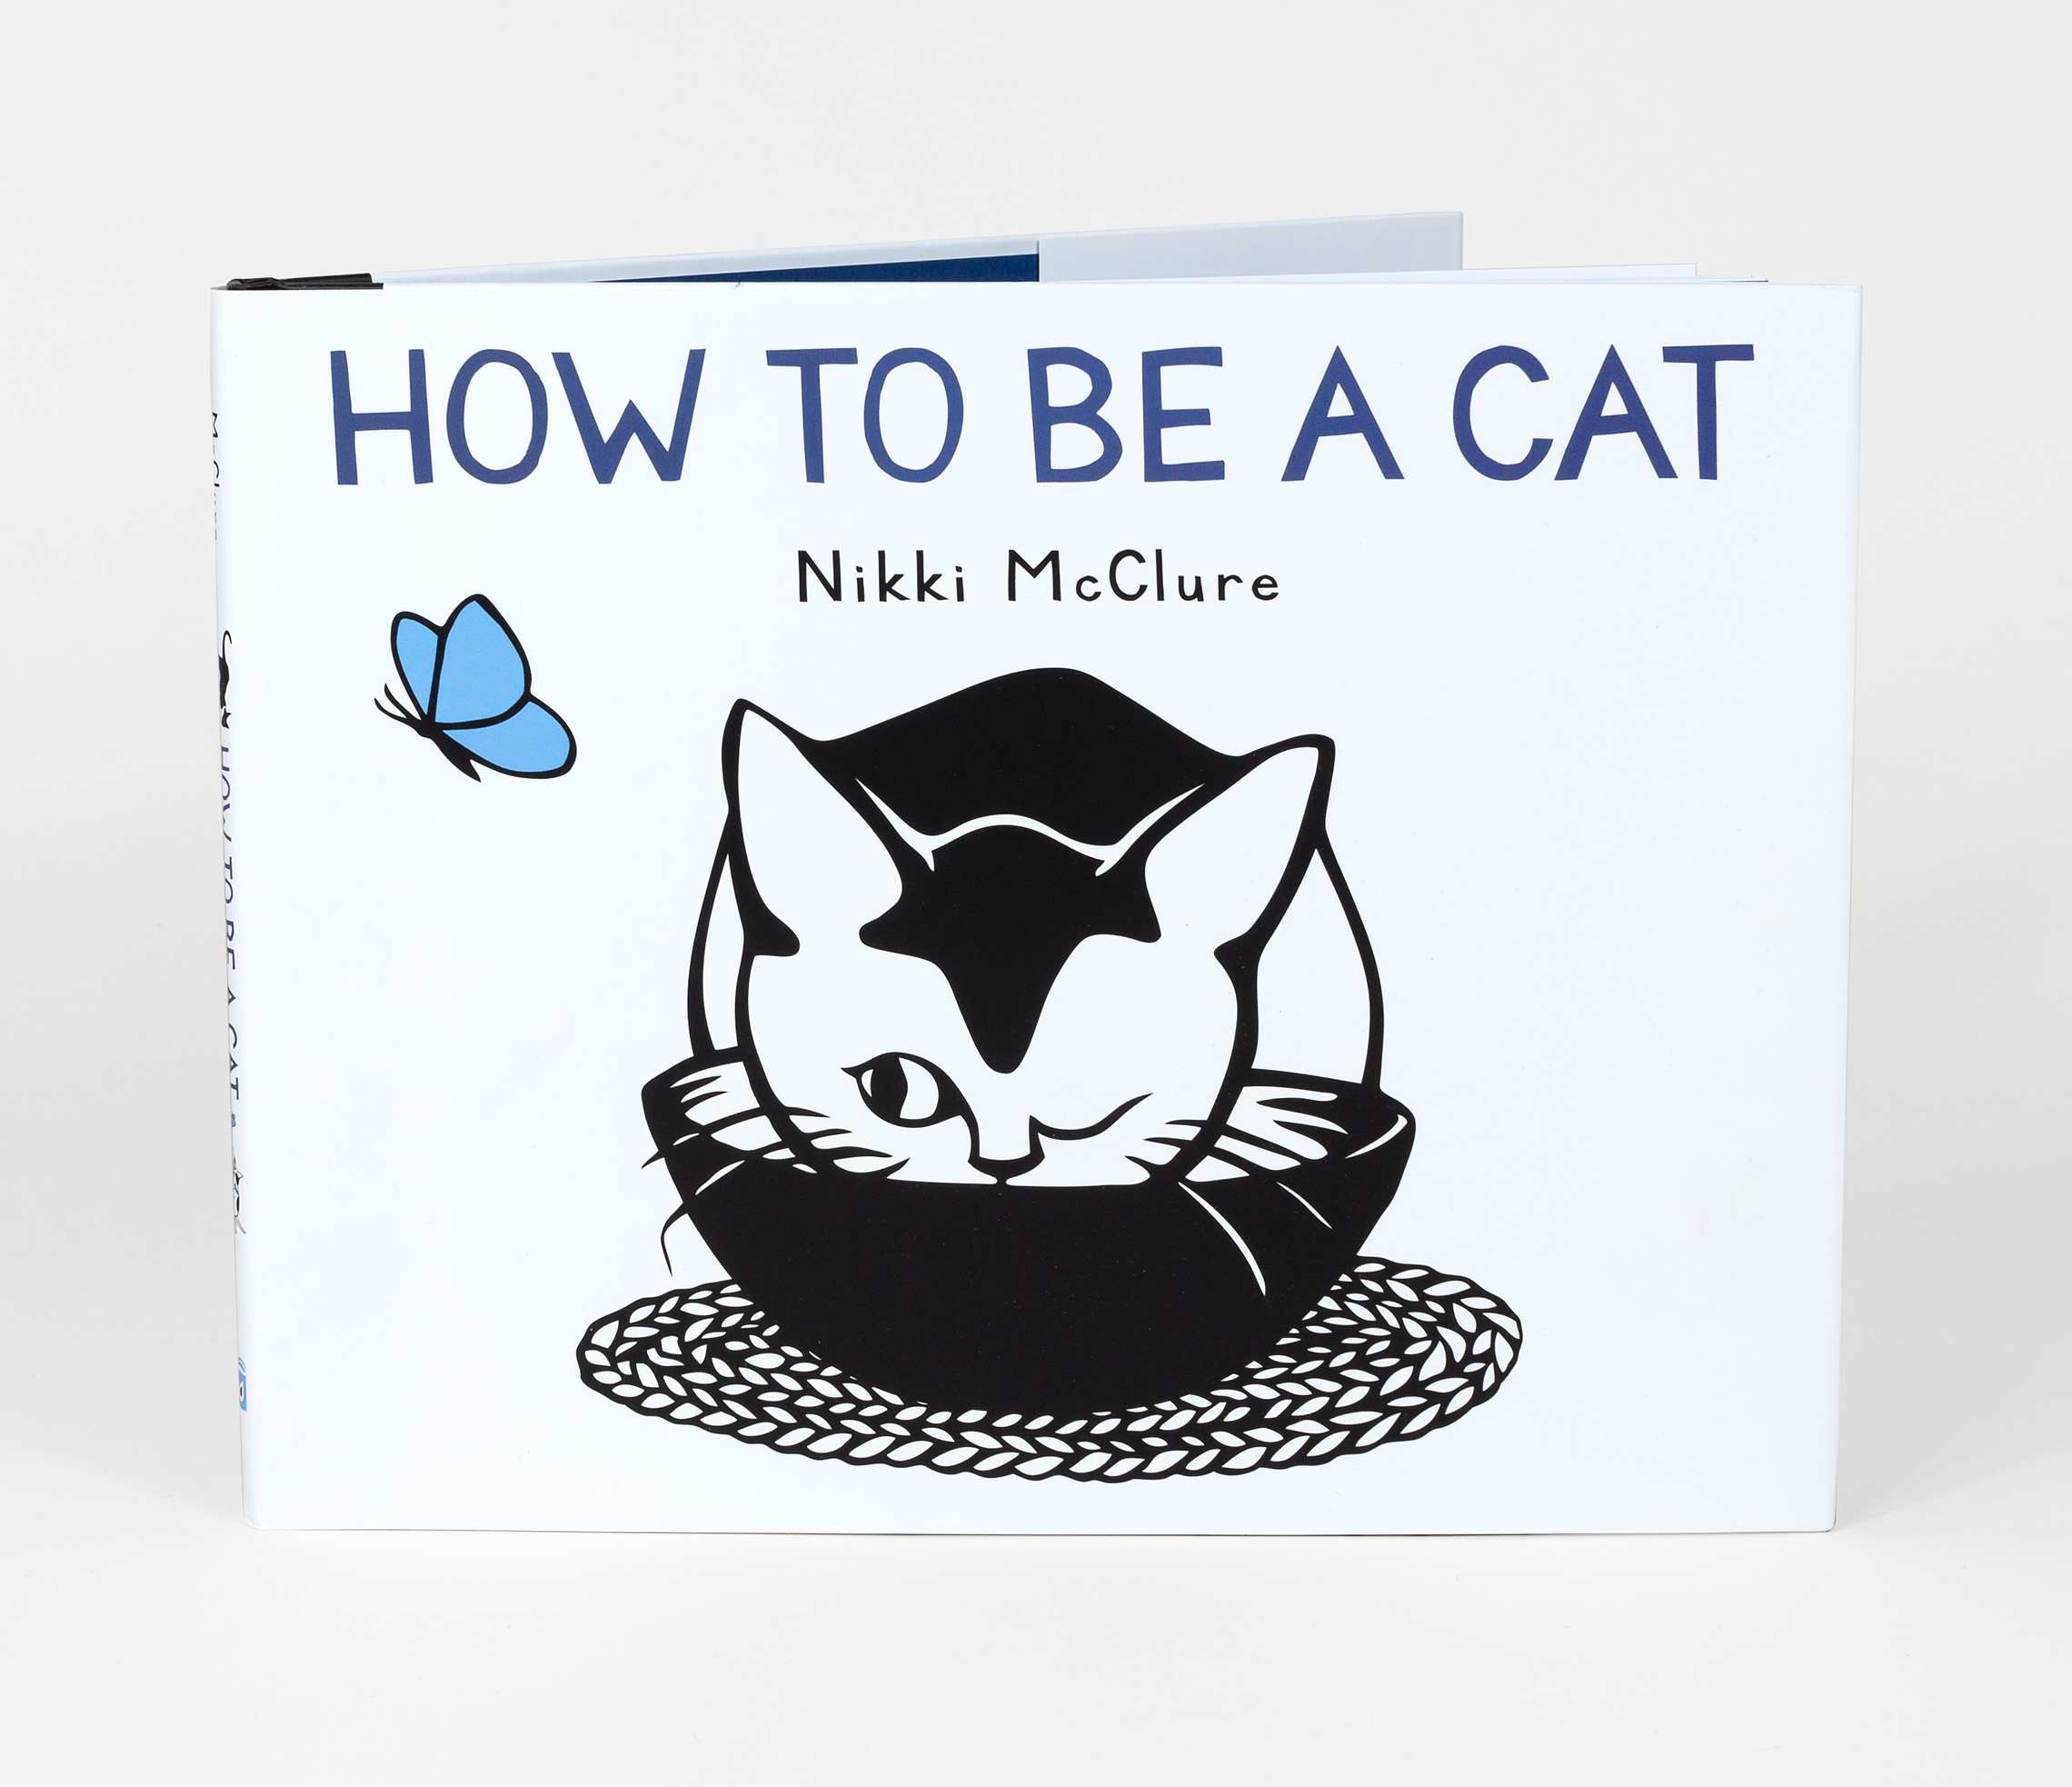 Nikki McClure - How To Be A Cat, book